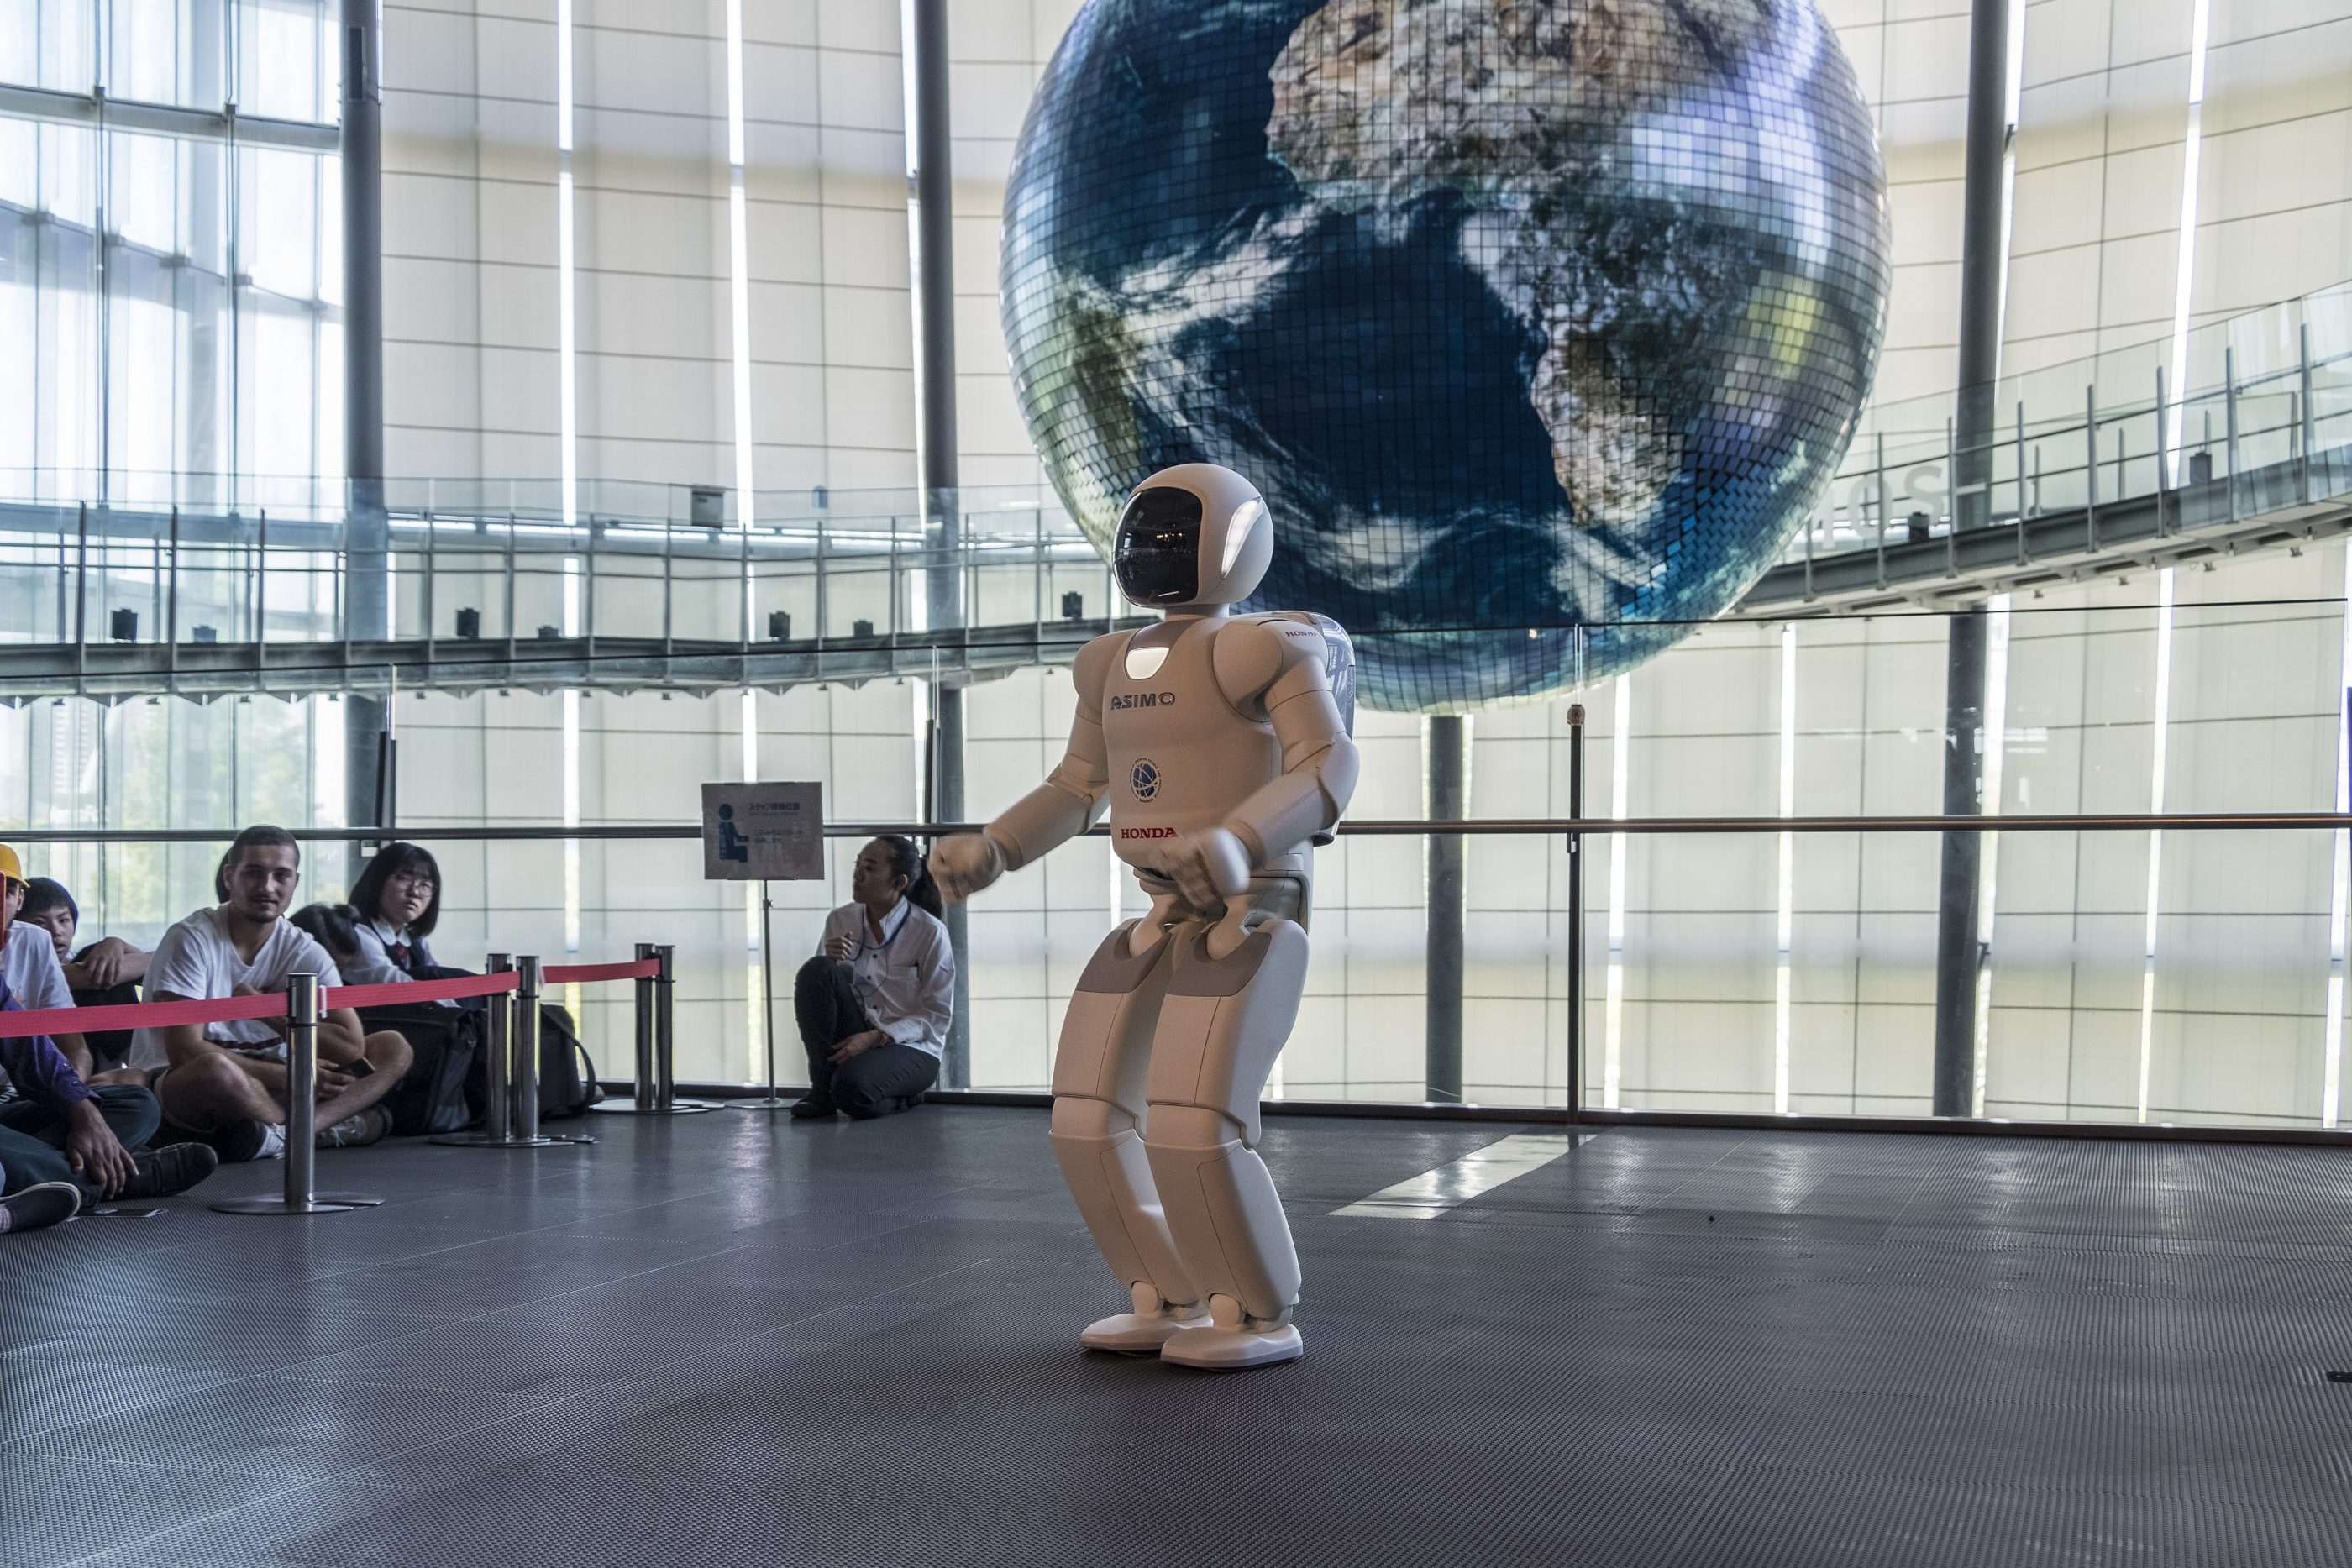 A robot demonstration next to the famous globe inside Miraikan museum in Tokyo.